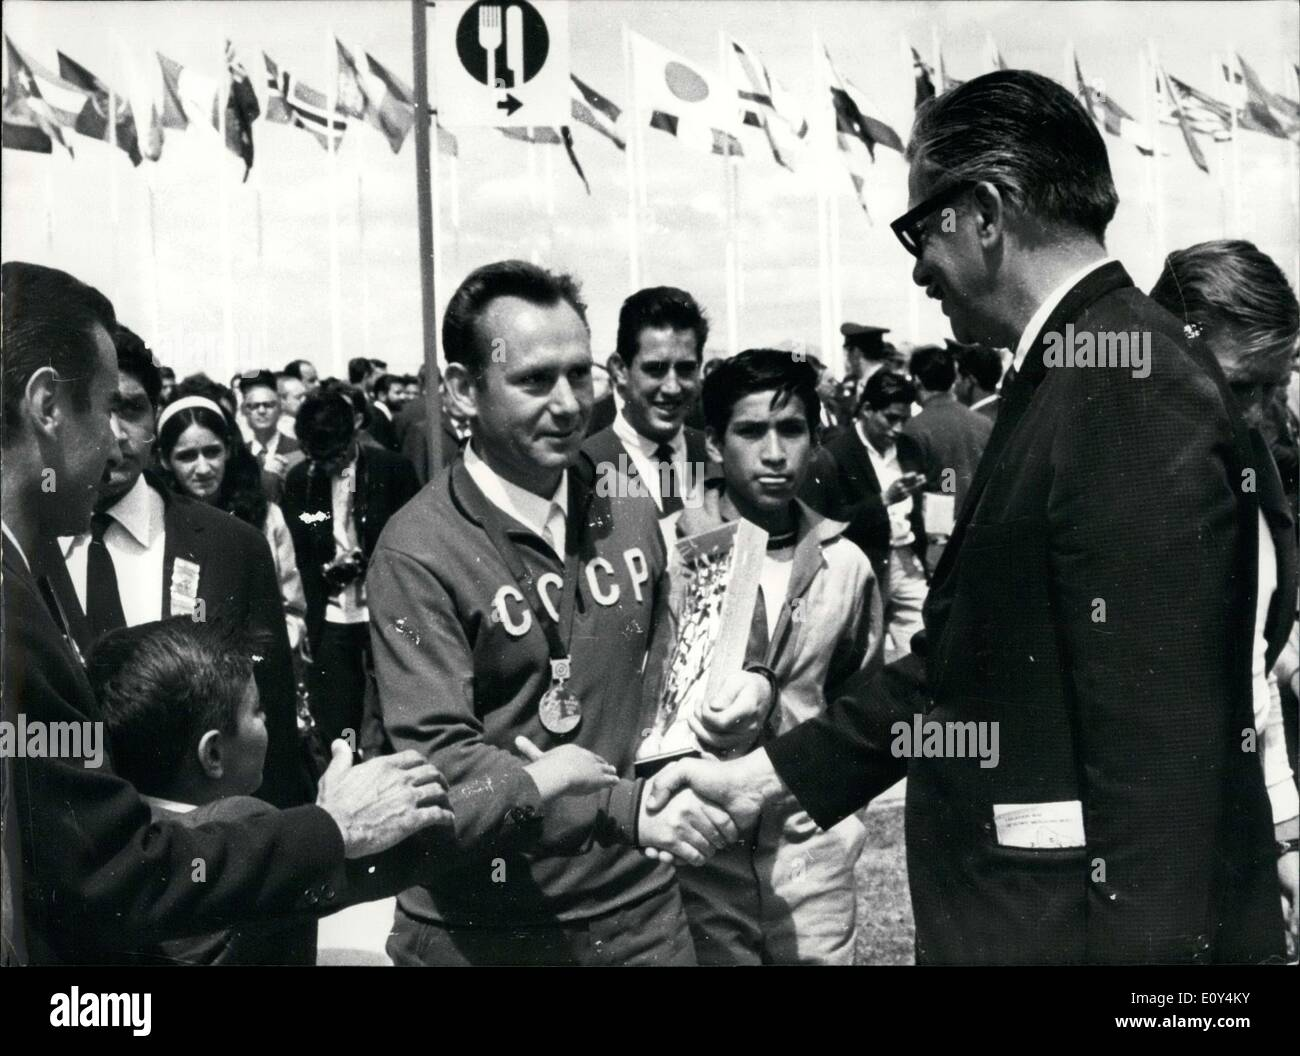 Oct. 20, 1968 - Soviet Shooter, Grigory Kosykh at the Mexico City Olympic Games - Stock Image